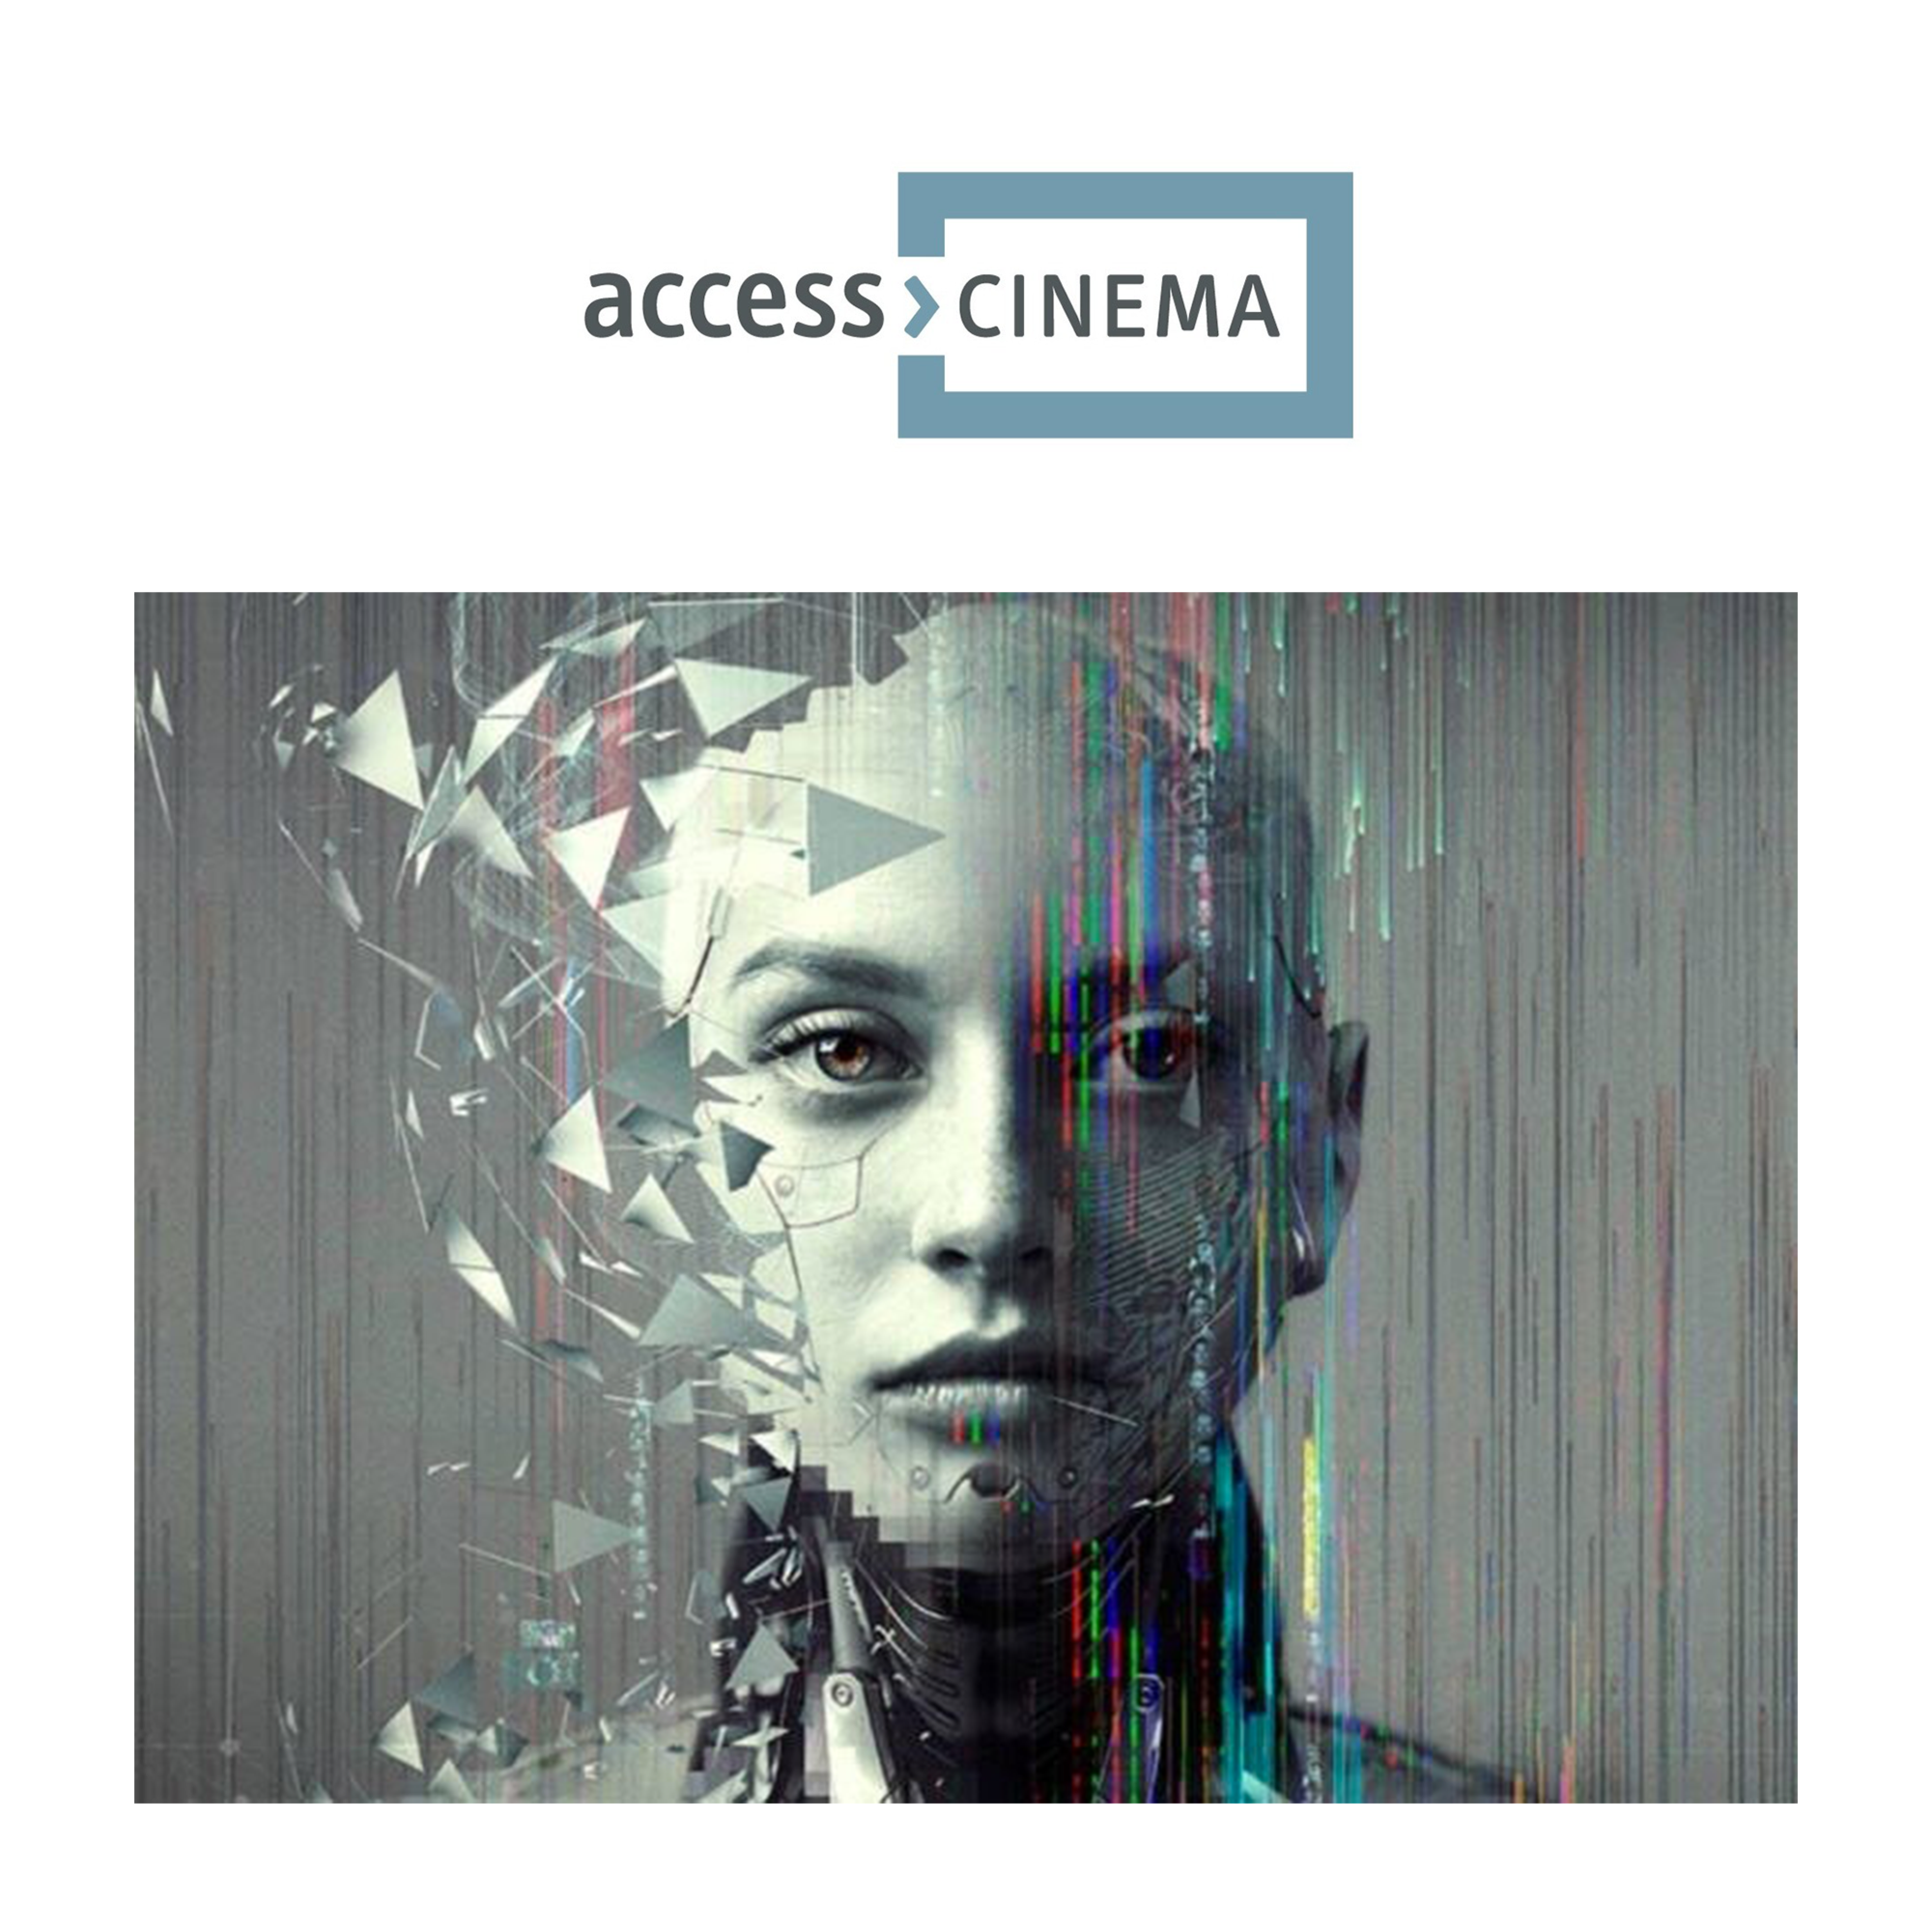 iHuman at access>CINEMA